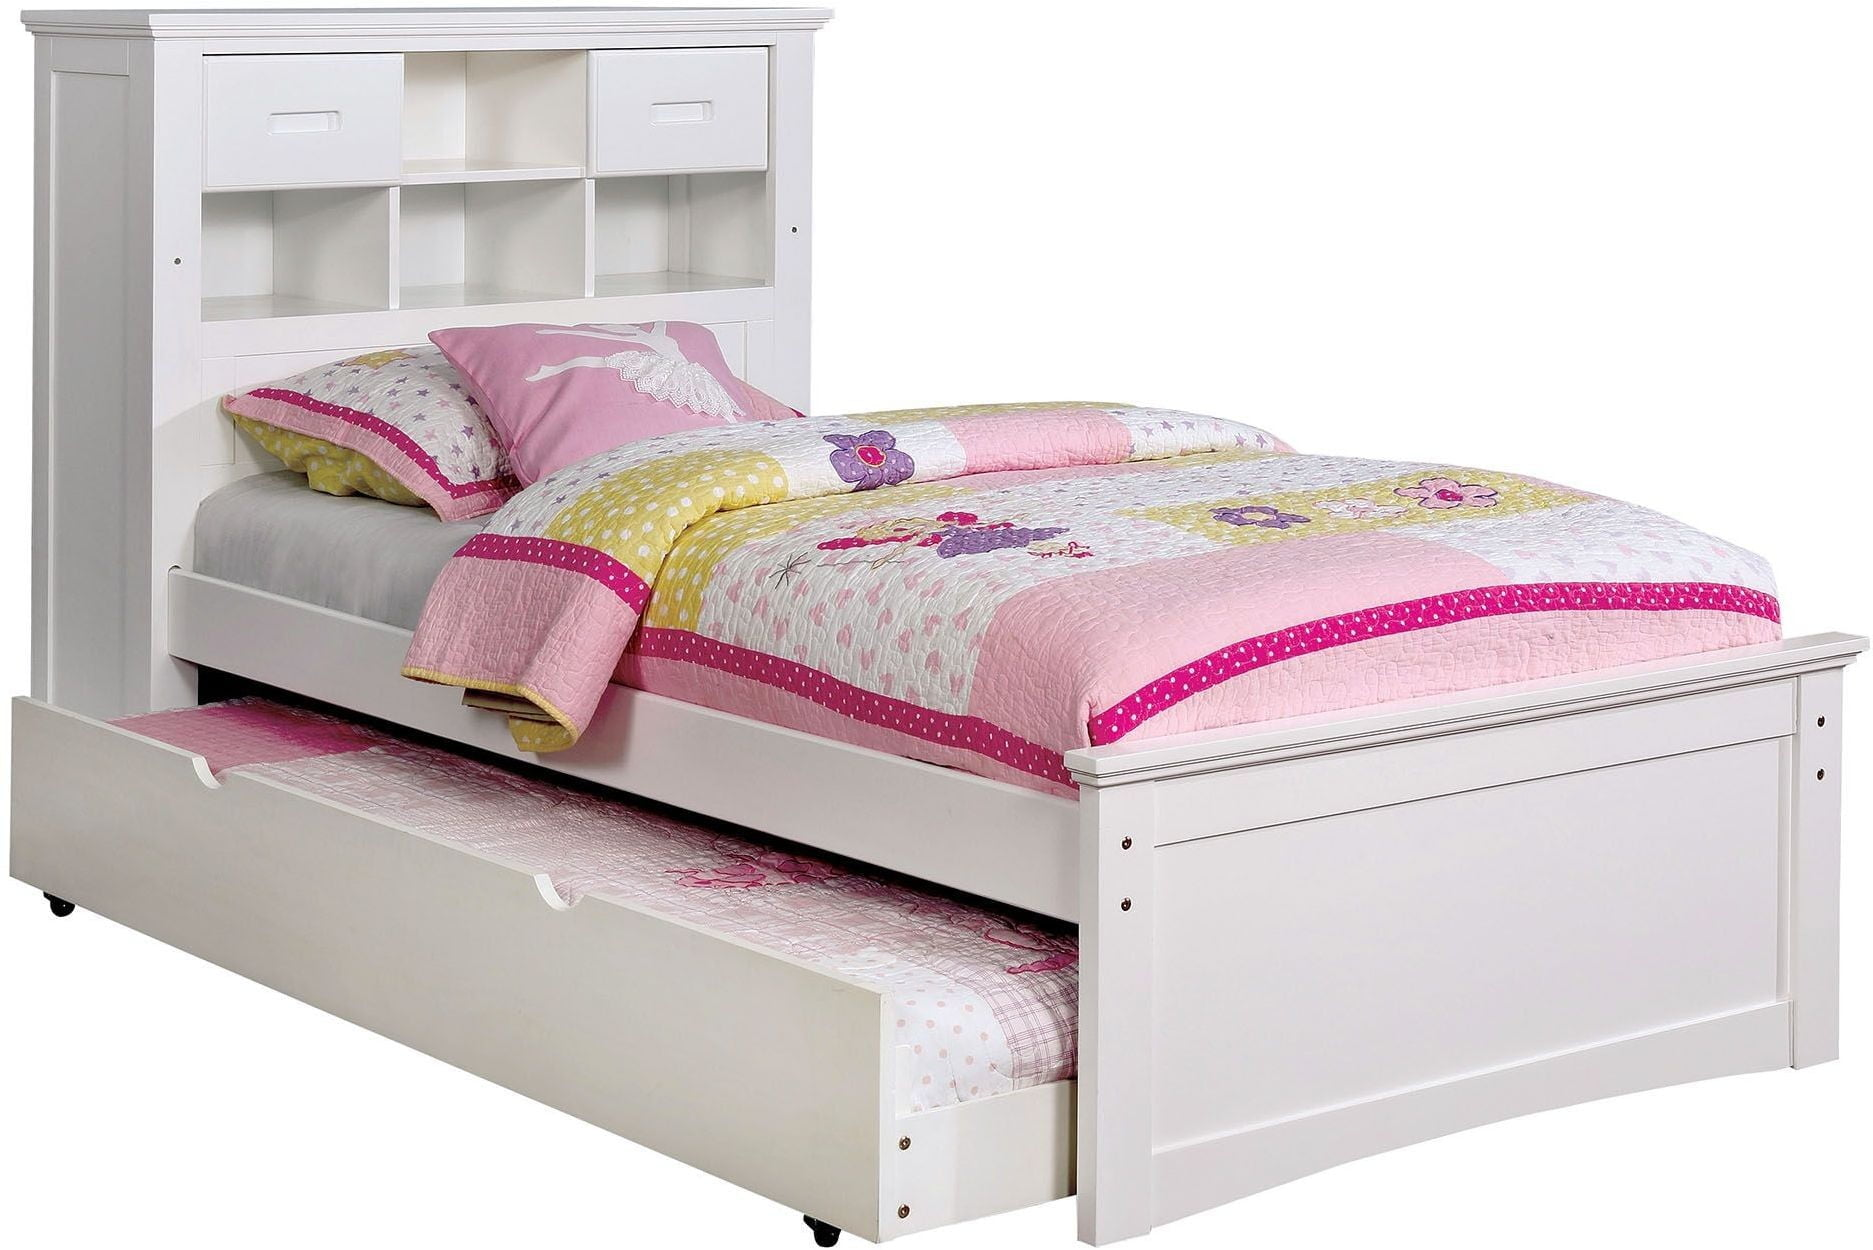 Pearland White Full Bookcase Bed From Furniture Of America